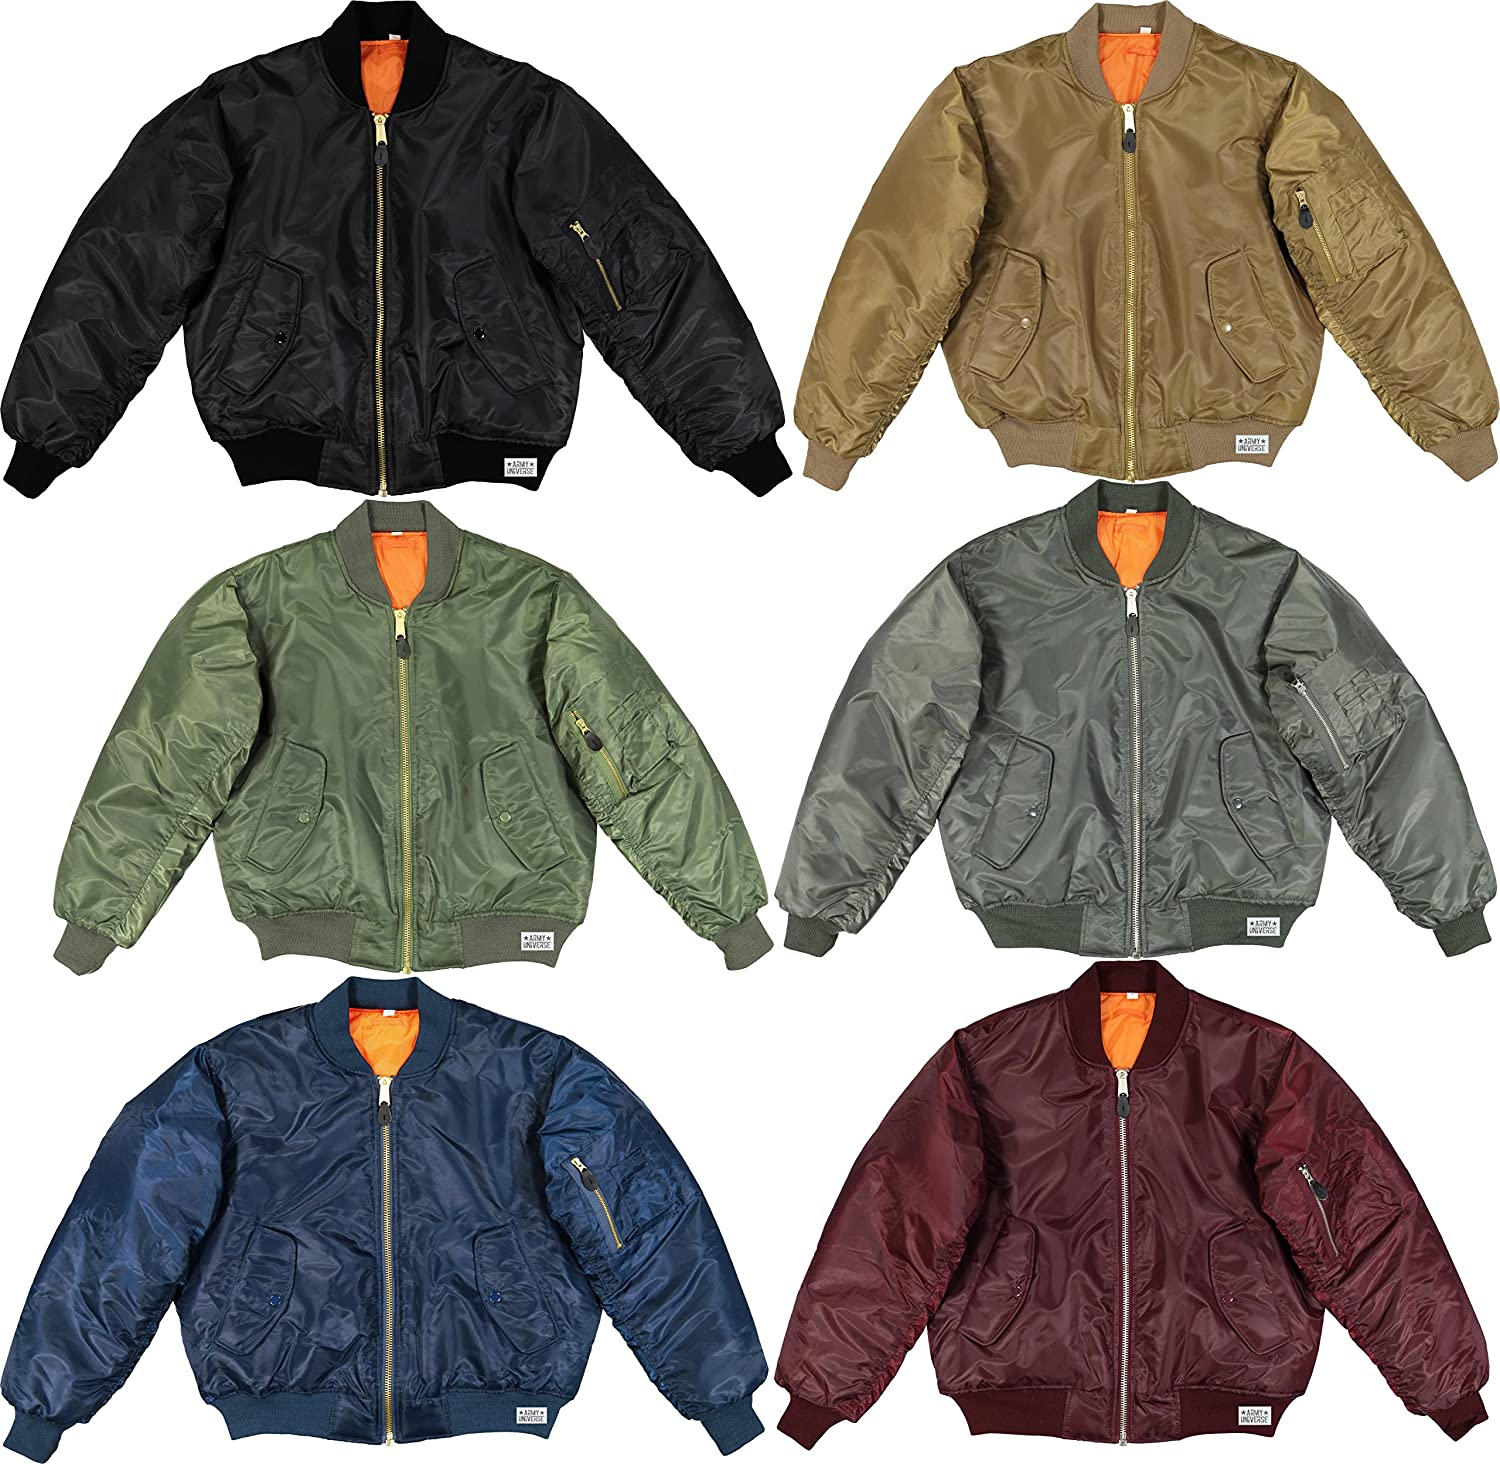 MA-1 Bomber Flight Jacket Reversible Air Force Military Coat with ... 5836ad66601